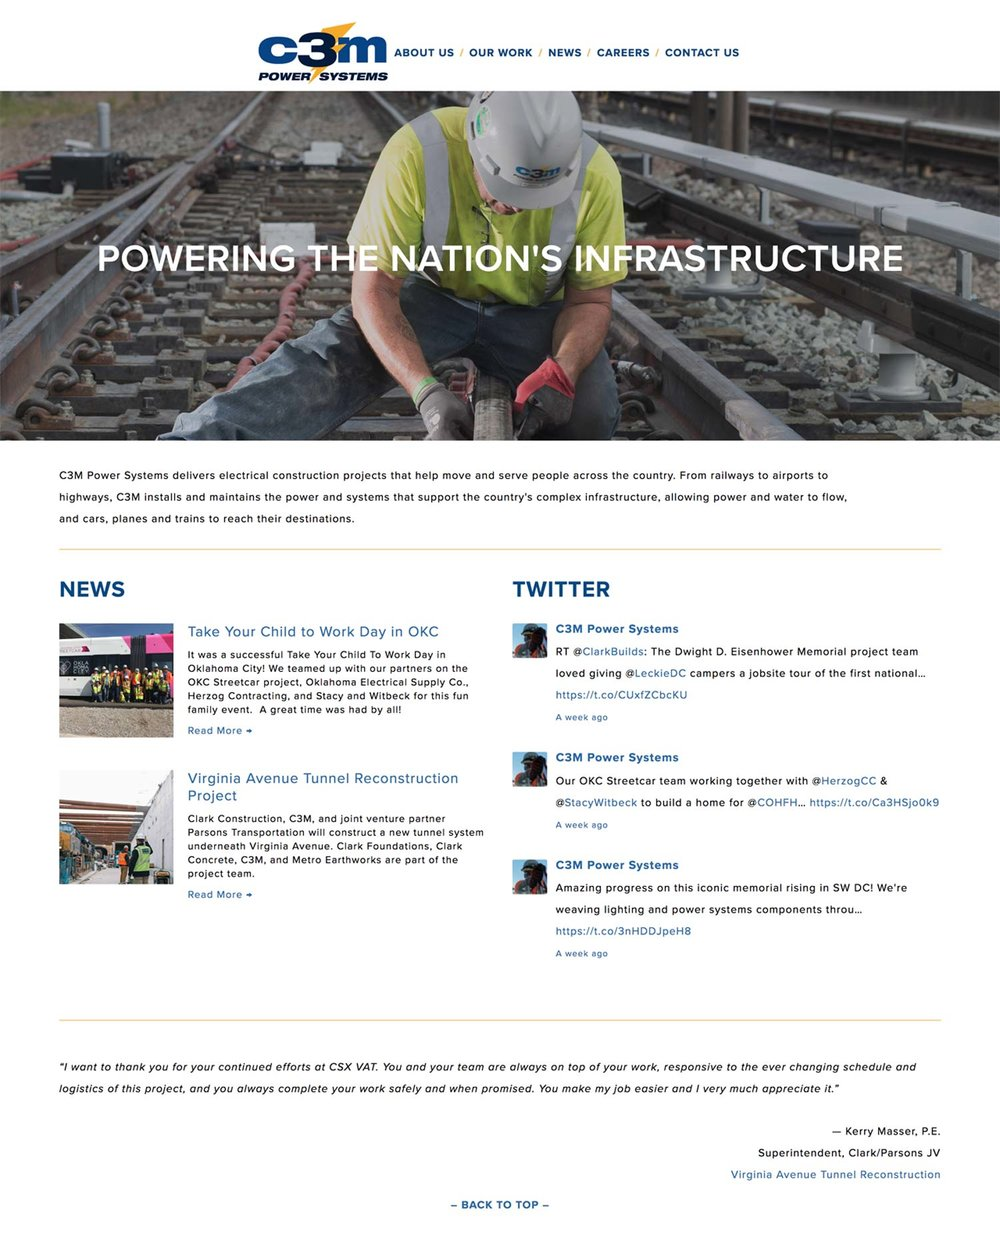 C3M Power Systems - Rail and Infrastructure Construction Division Of Clark Construction Group